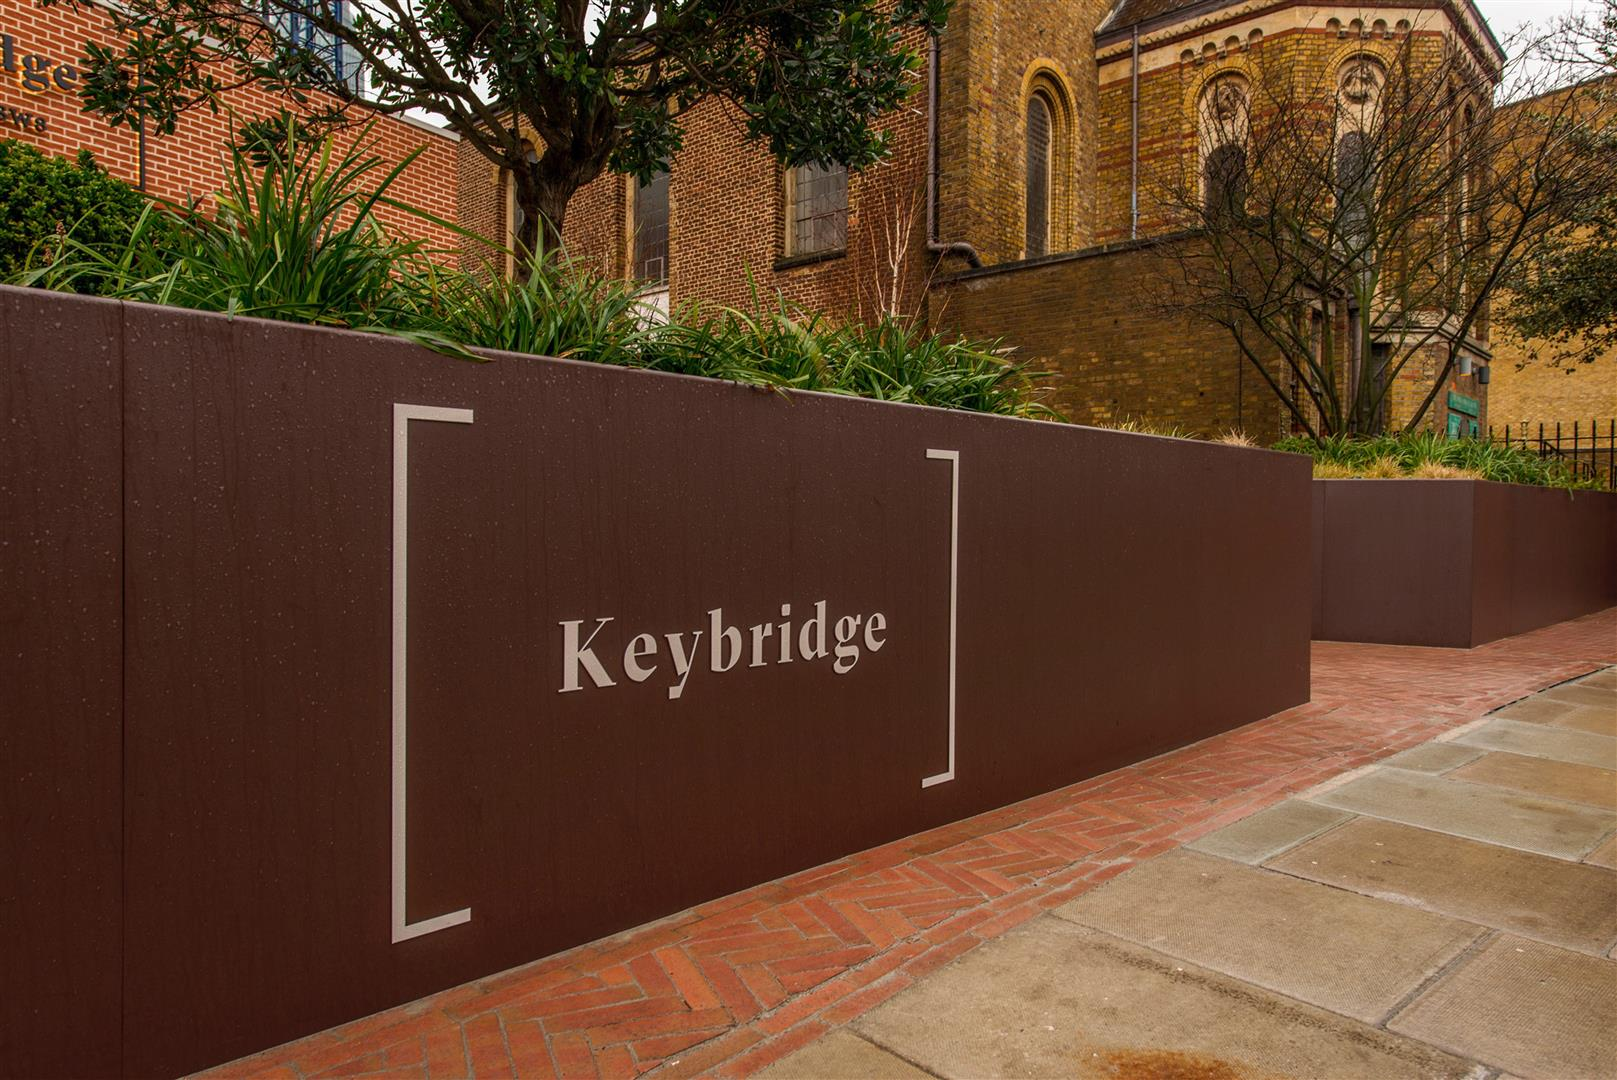 Keybridge,COMPANY